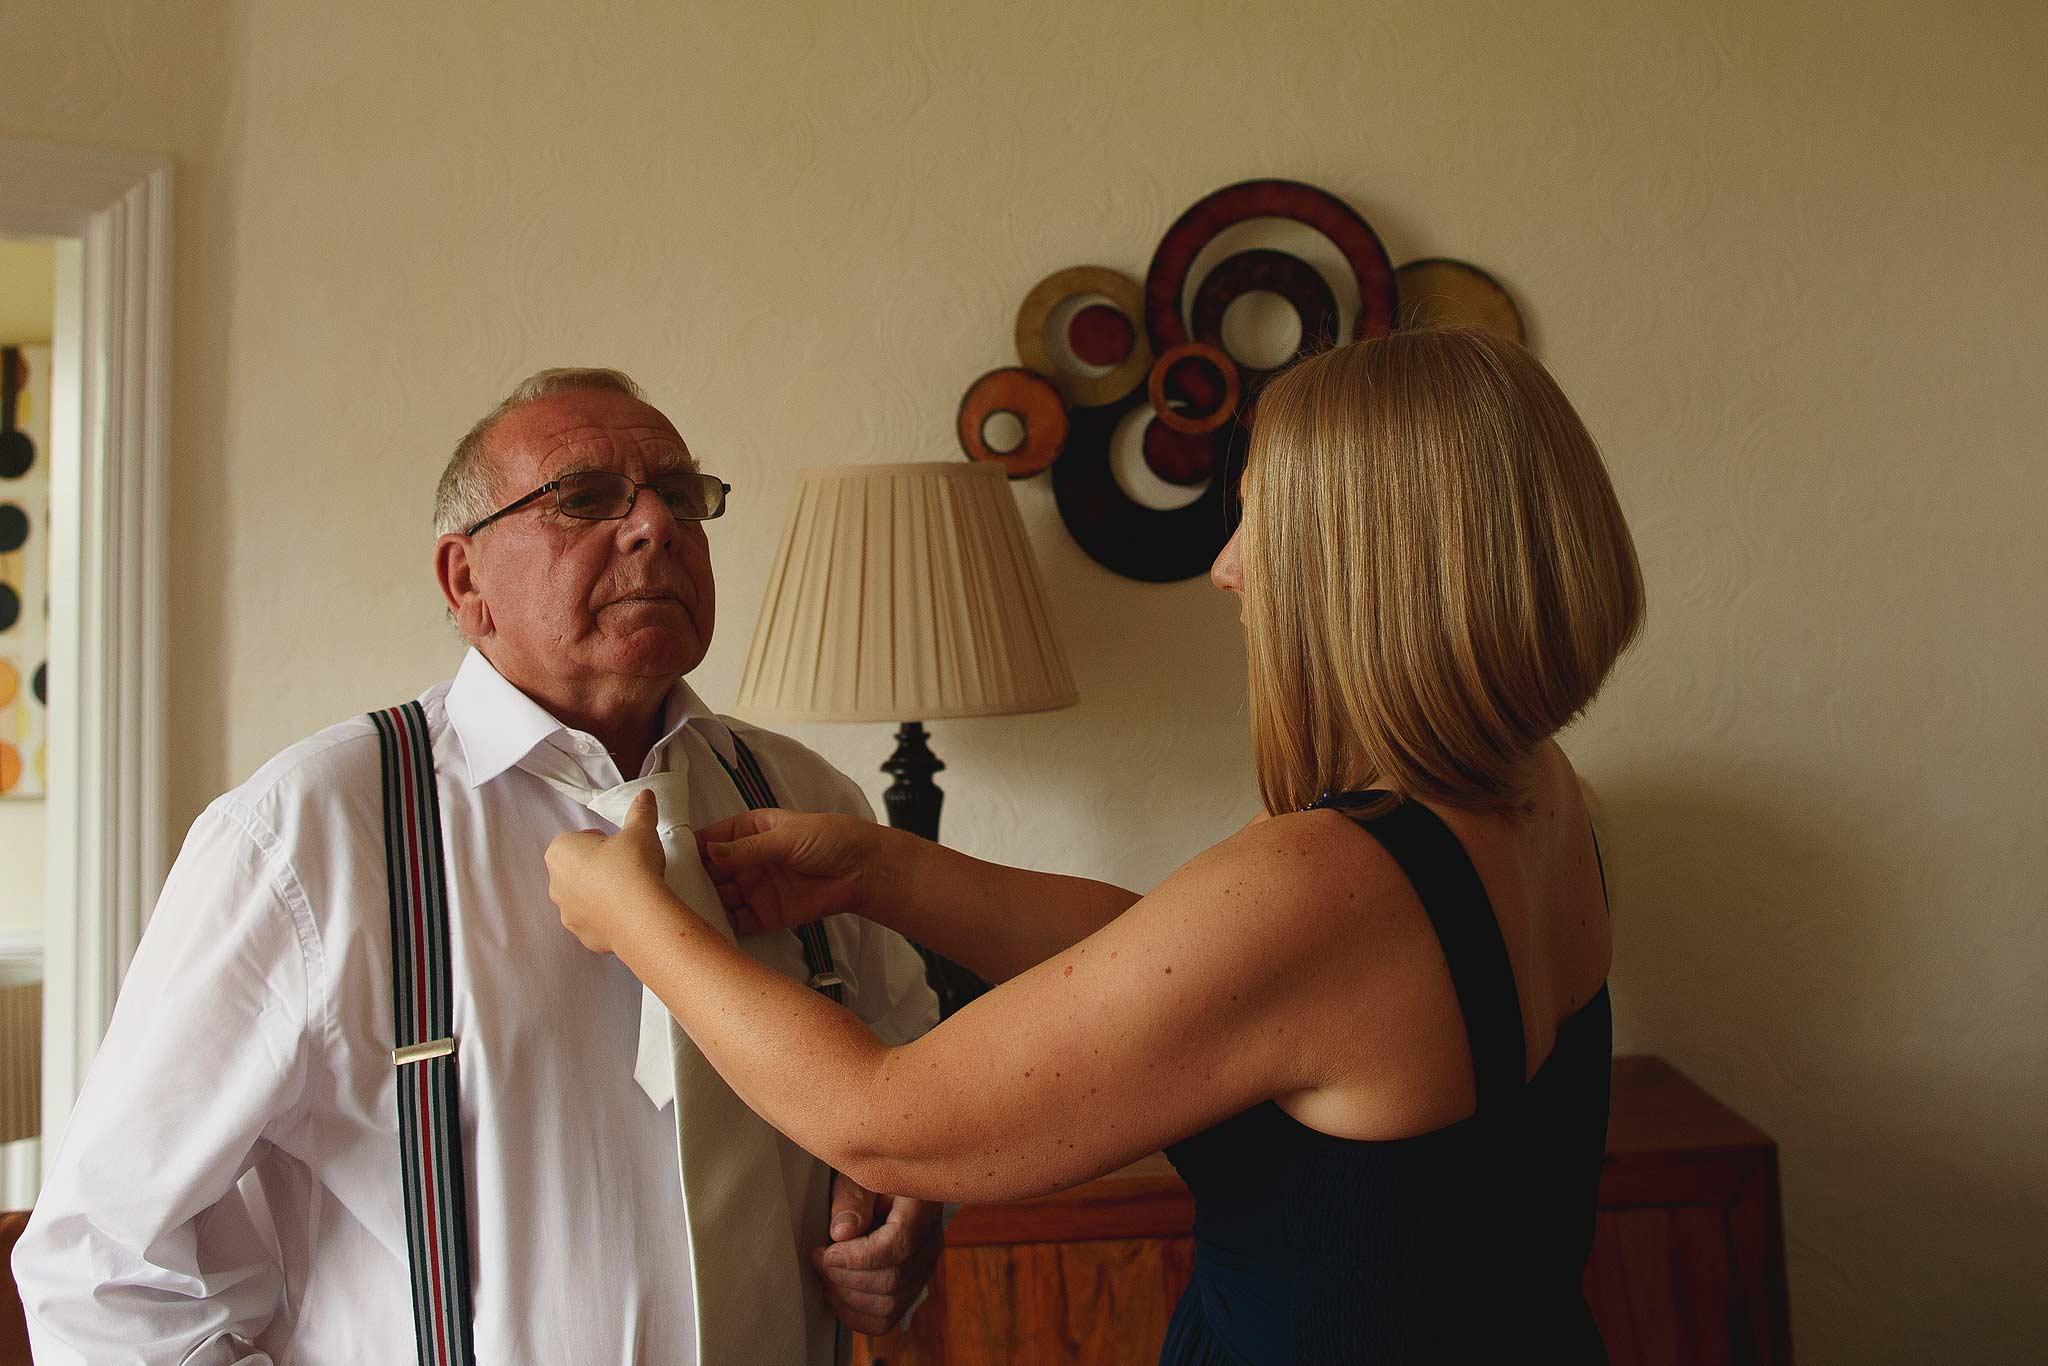 Daughter helping his dad with his tie on the morning of the wedding